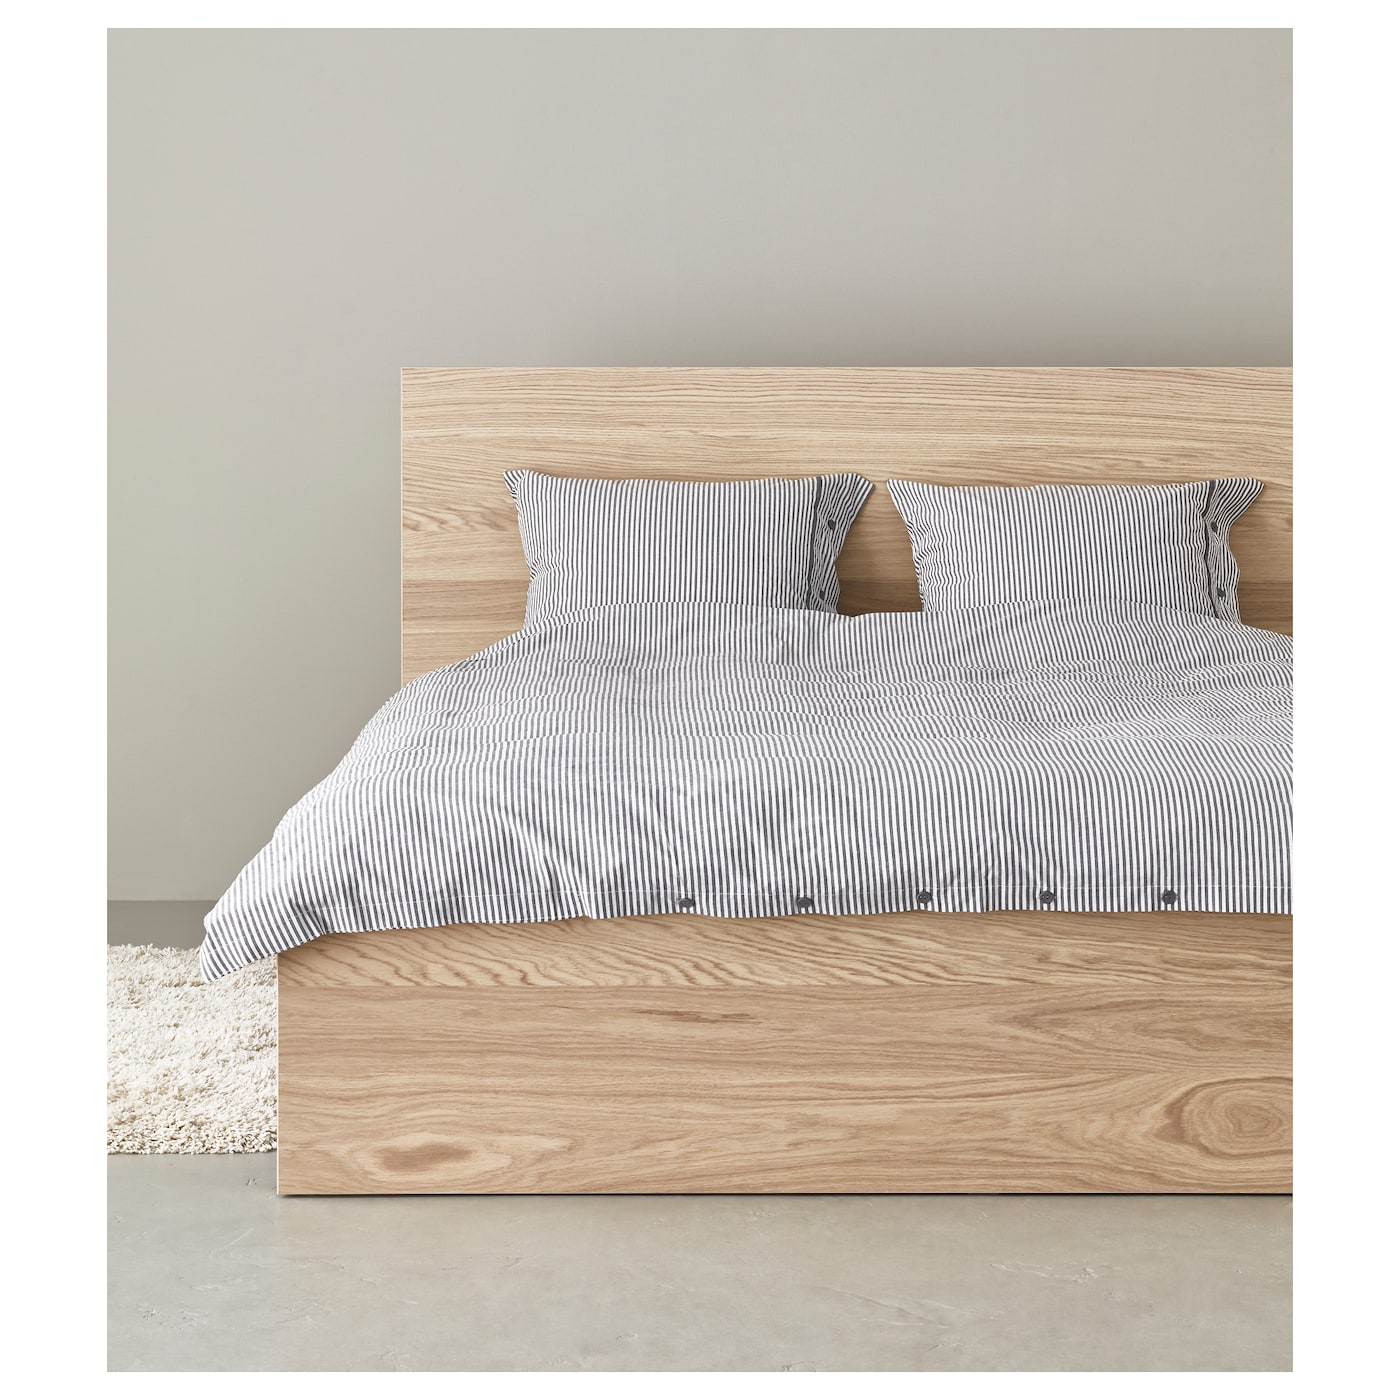 Malm bed frame high white stained oak veneer lur y for Ikea malm bett 140x200 anleitung